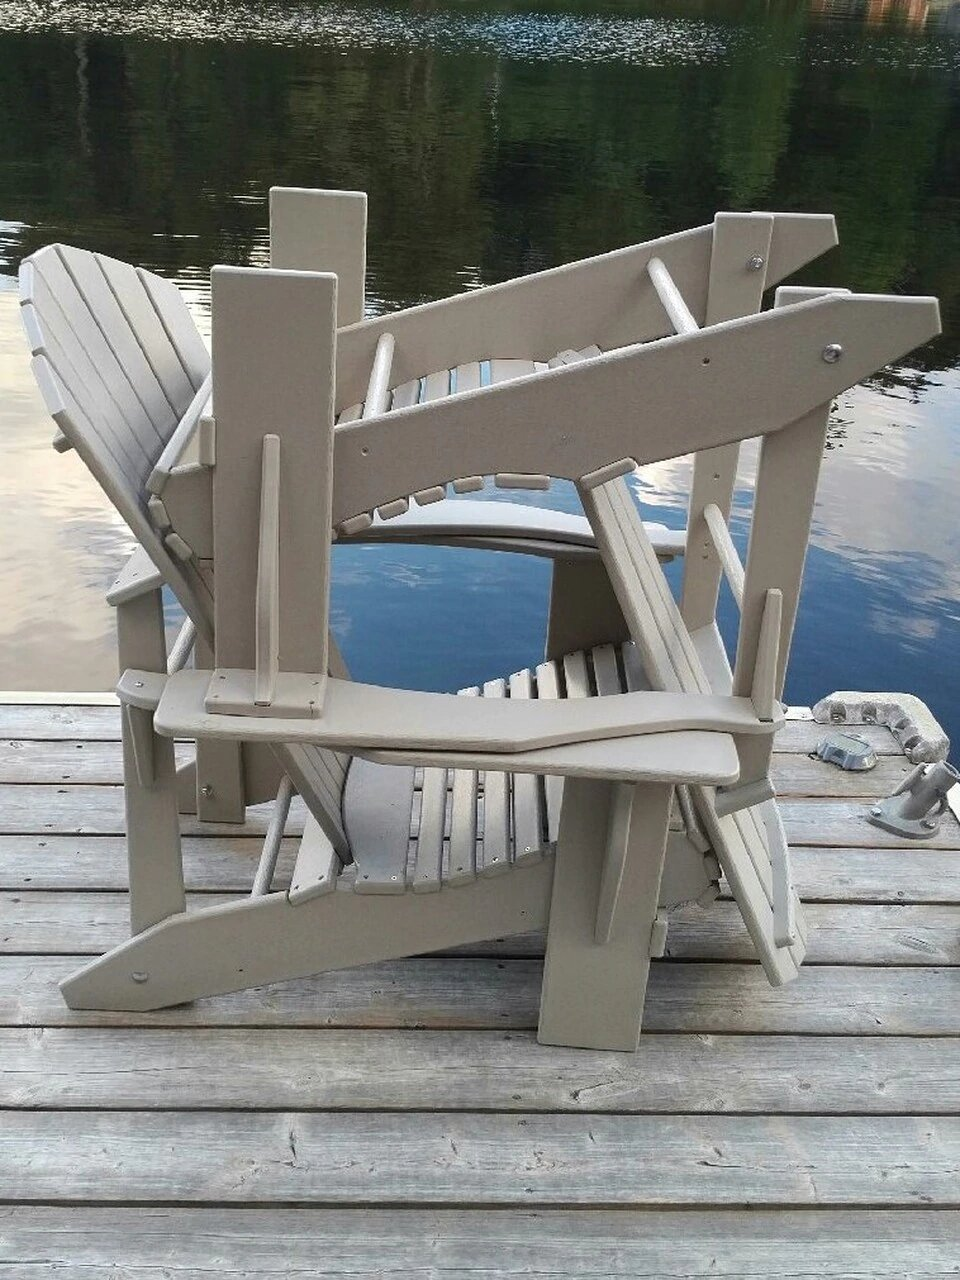 The solution to winter storage for Adirondack and Muskoka Chairs